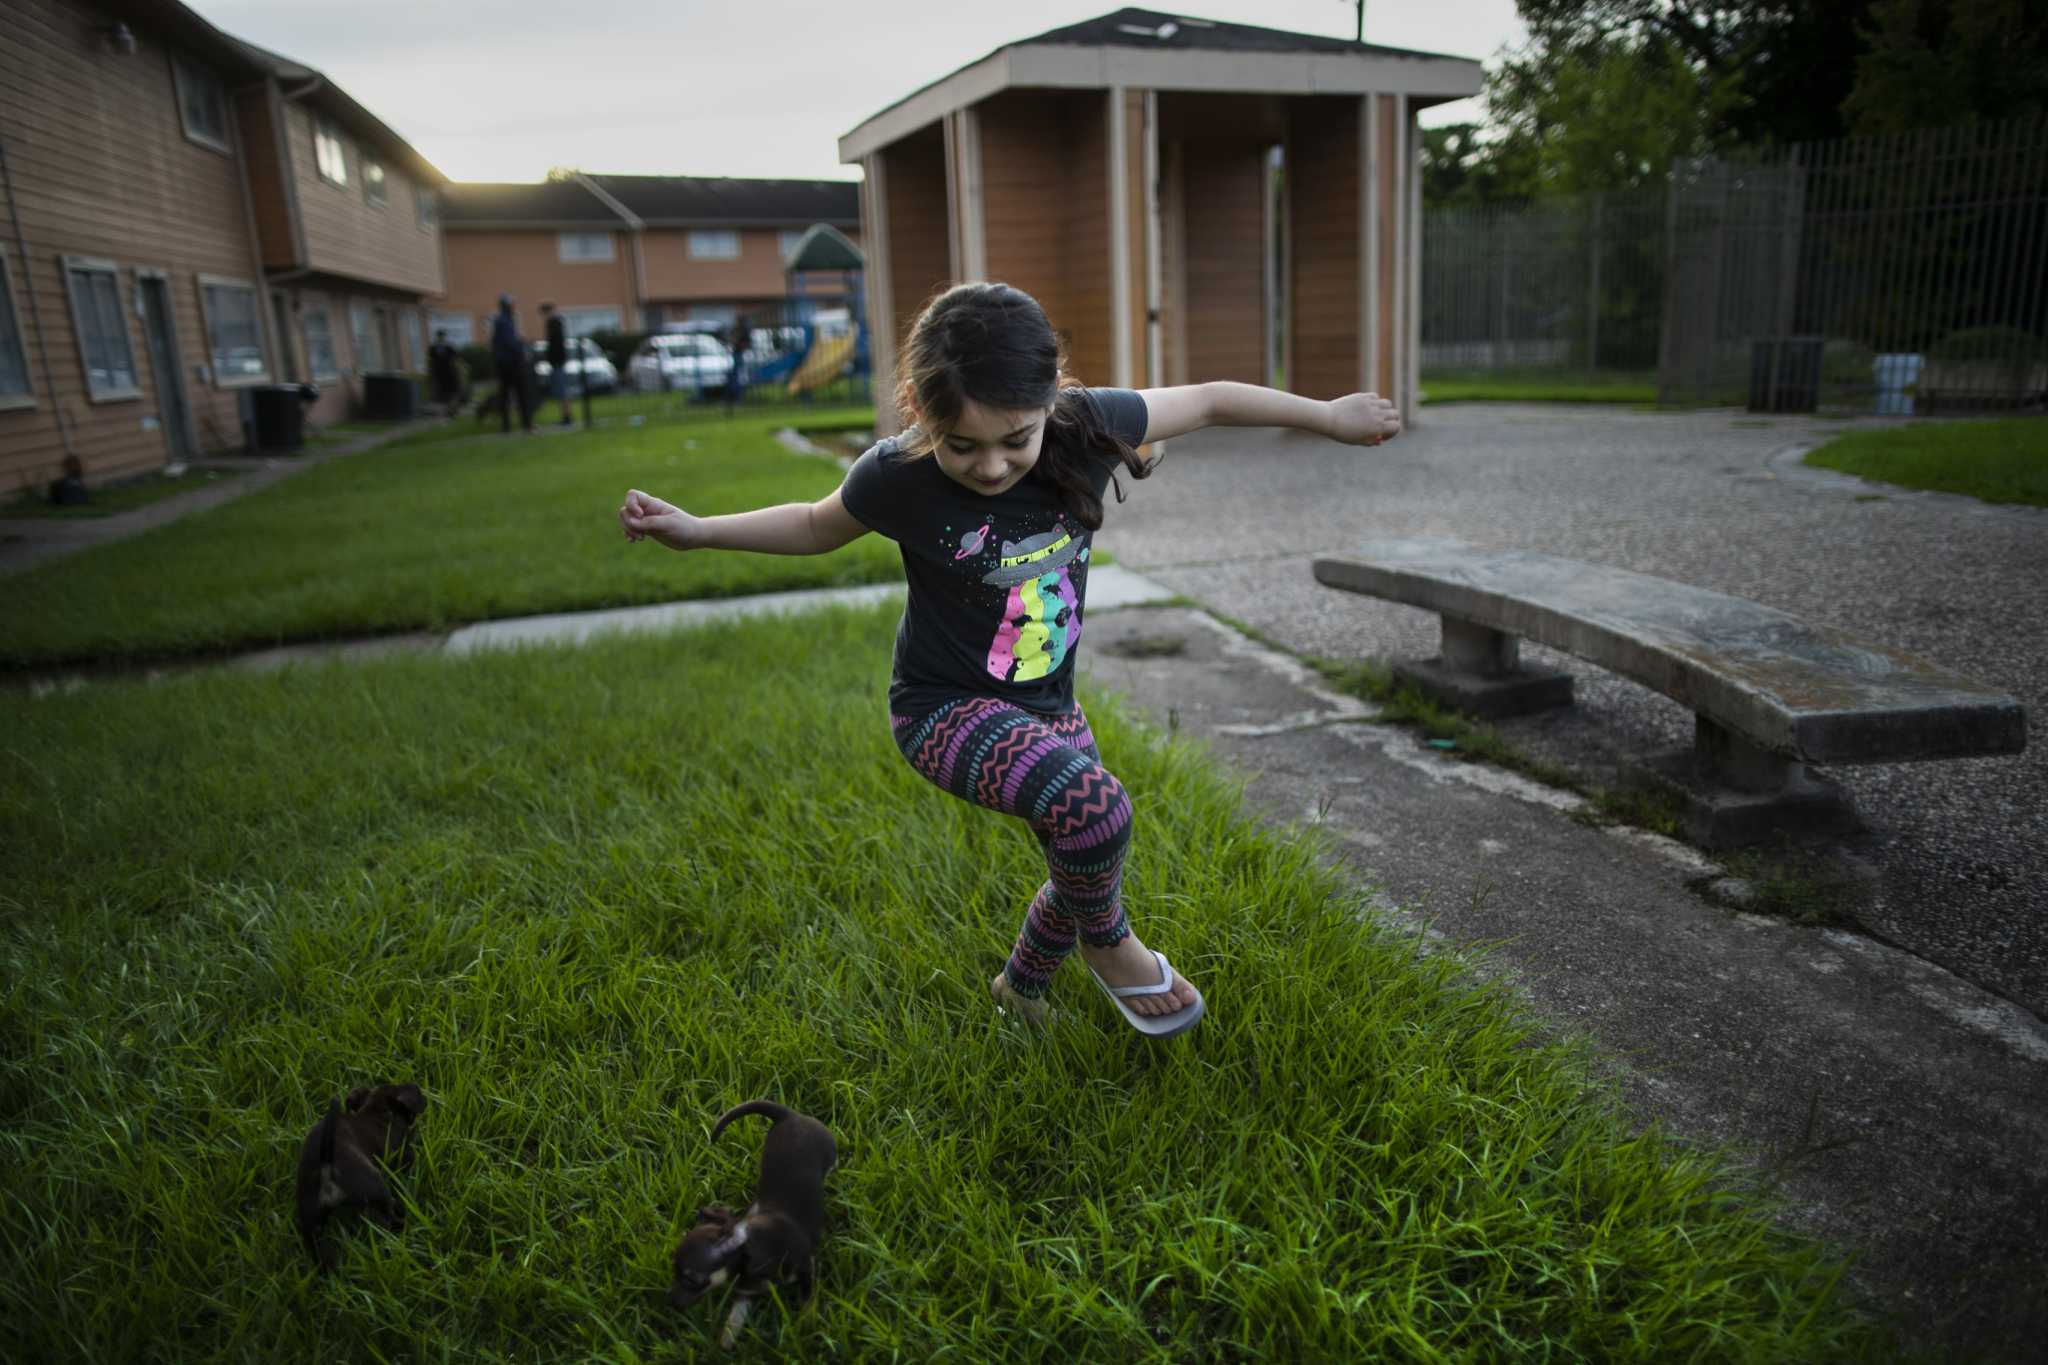 Emmarose Partida, 8, plays on Aug. 1 with two puppies her family found in need of a home near their home in Aldine. Partida's mother and father have chosen to not immediately send their children back to Aldine ISD schools due COVID-19 concerns and potential health implications.